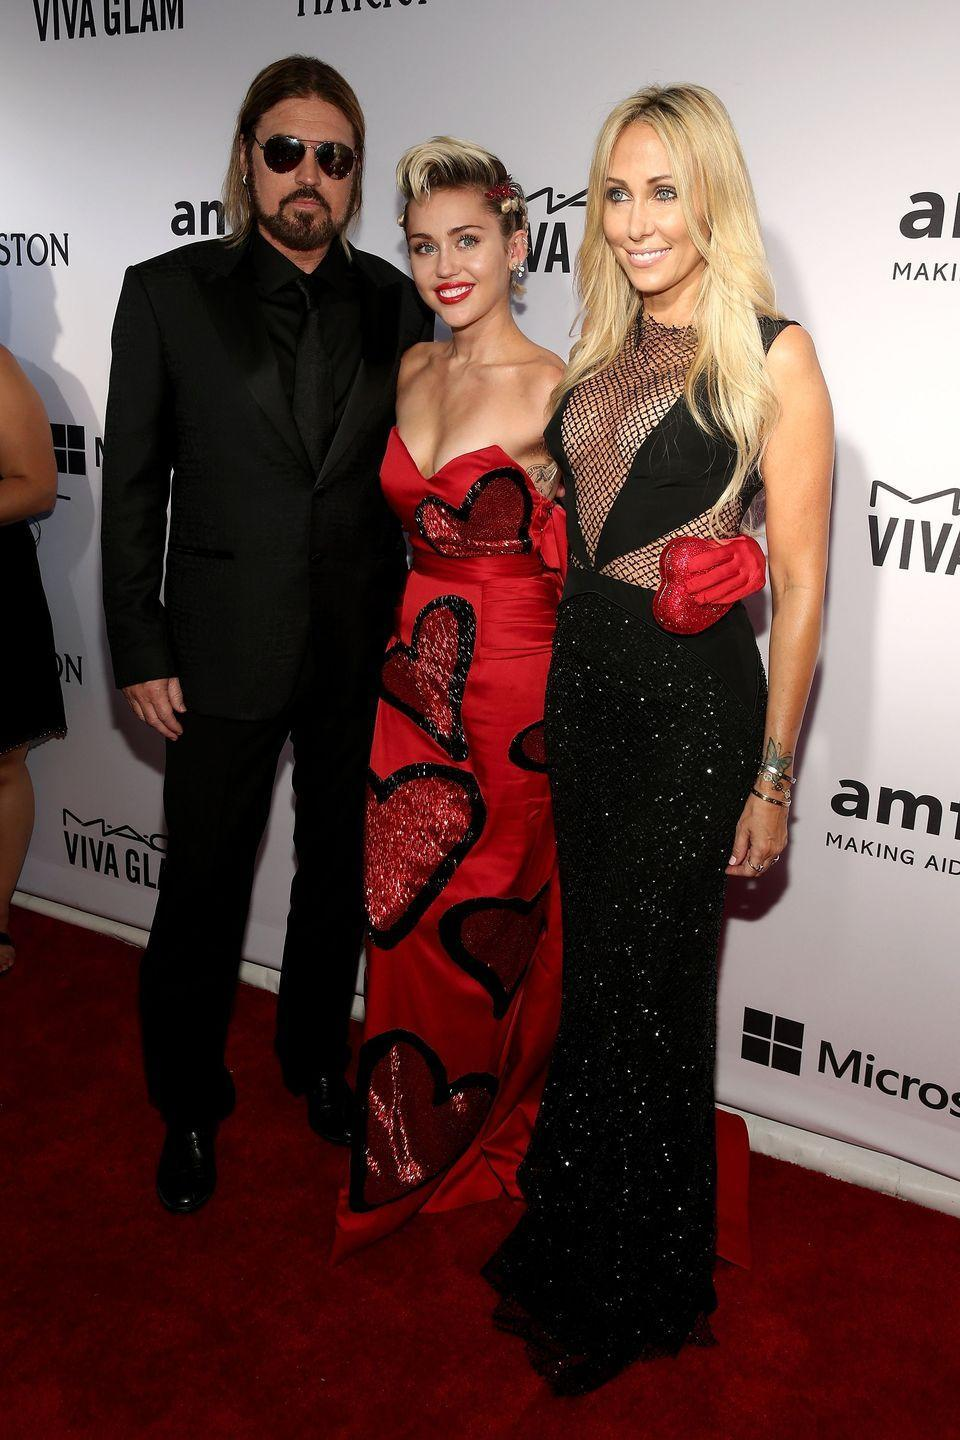 """<p><strong>Famous parent(s)</strong>: singer Billy Ray Cyrus<br><strong>What it was like</strong>: """"We have always had money and we have always had fame,"""" Miley has <a href=""""http://www.elleuk.com/fashion/celebrity-style/articles/a26094/miley-cyrus-elle-cover-interview/"""" rel=""""nofollow noopener"""" target=""""_blank"""" data-ylk=""""slk:said"""" class=""""link rapid-noclick-resp"""">said</a>. """"It's not new. People who grew up without either can get more of a culture shock and go the wrong way. 'Oh my God, I have all this money! How can I spend it? All these people will like me because I'm famous!' I've always had people trying to be my friend for the wrong reasons. I'm used to it. I can smell BS a mile away.""""</p>"""